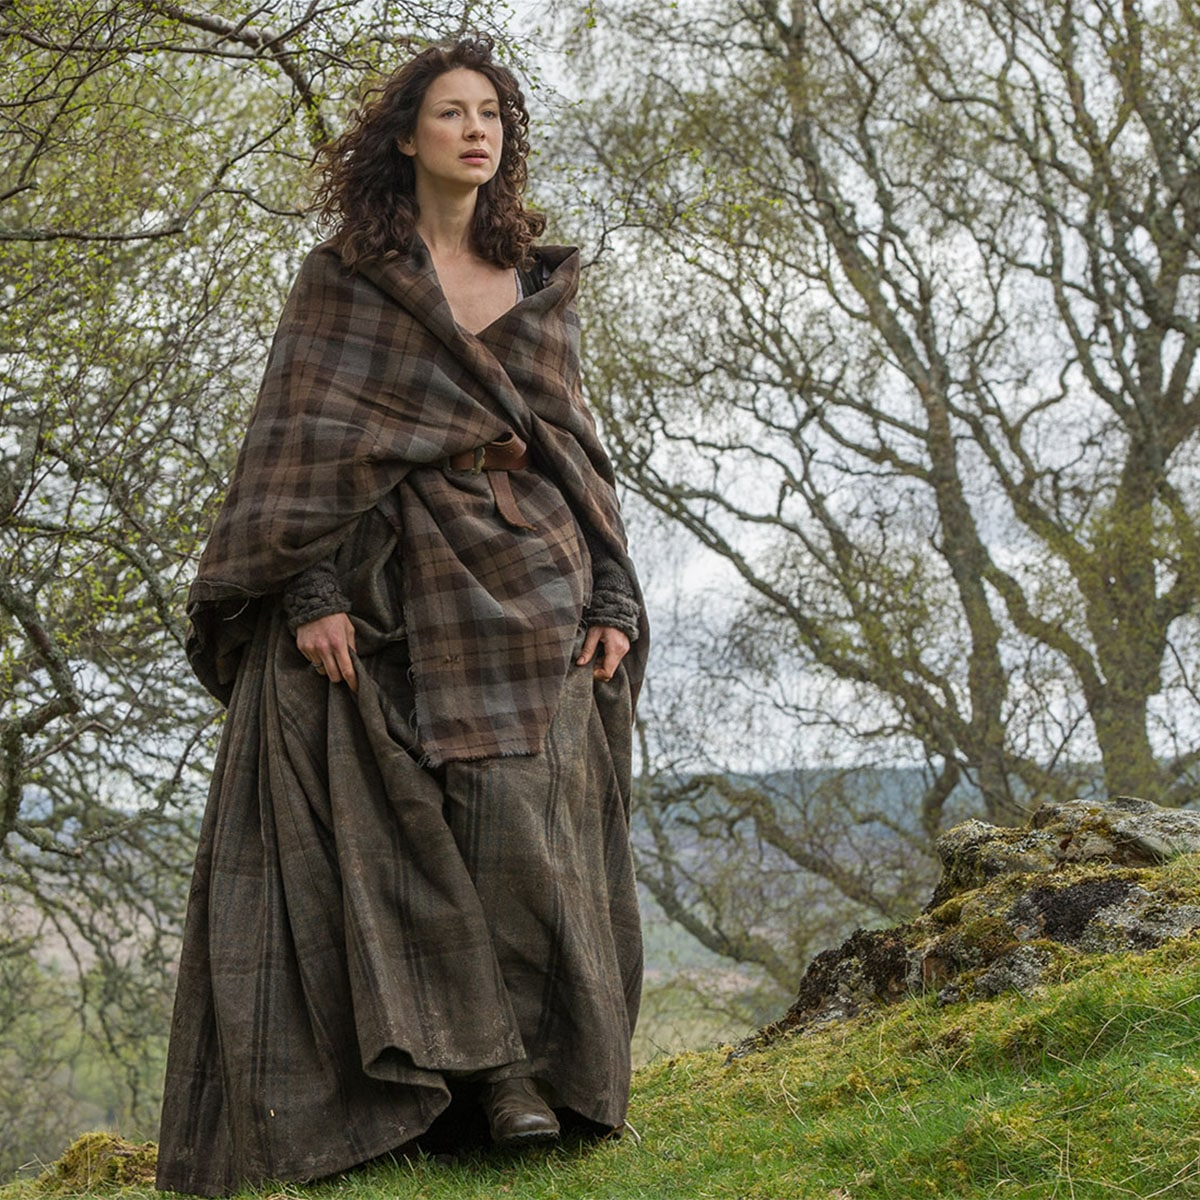 This is the claire outlander earsaid which is made up of tartan.